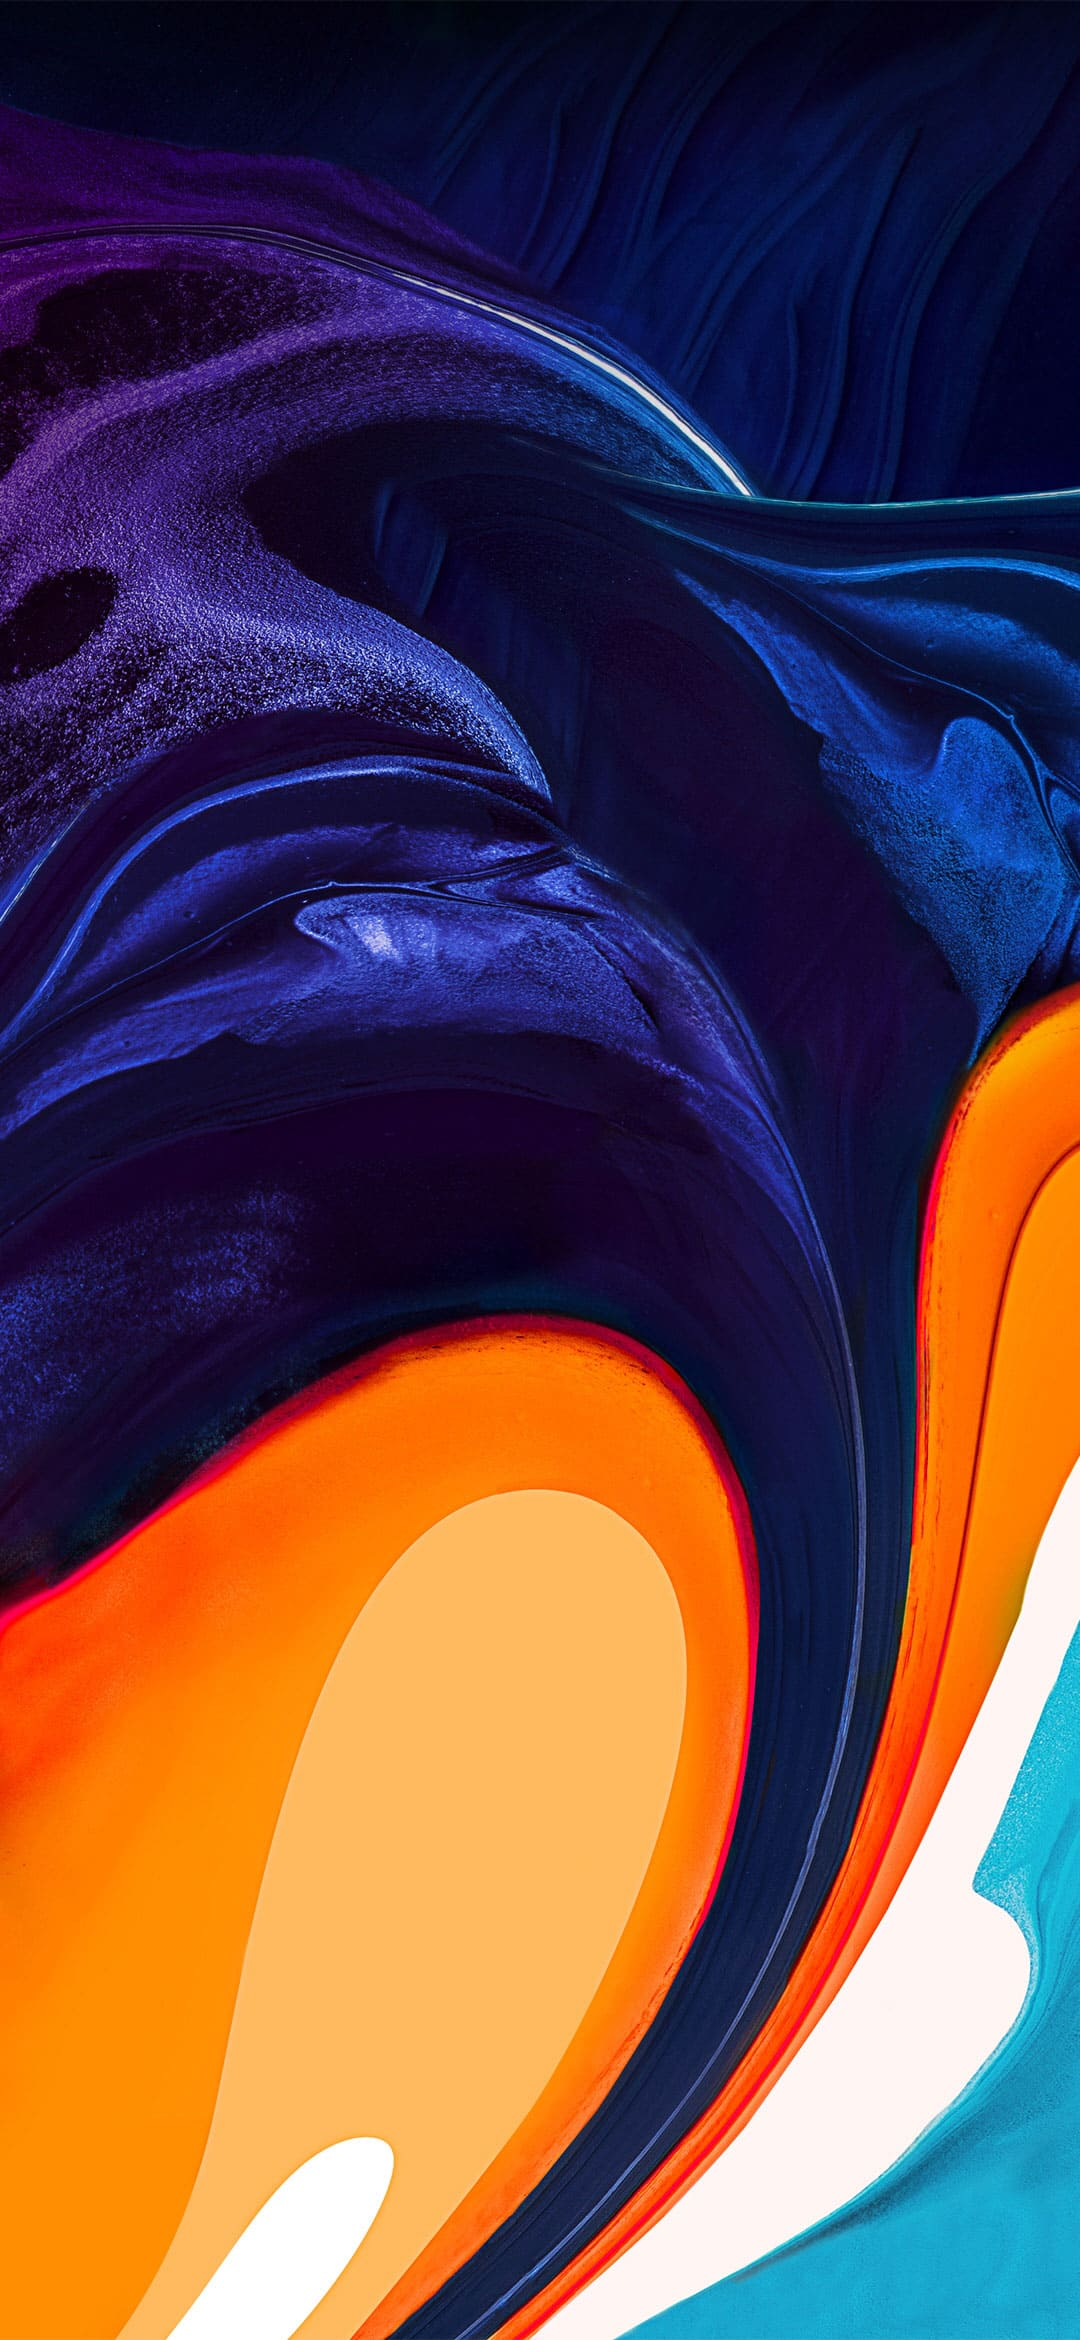 1080x2340 Samsung Galaxy A60 Wallpapers (Full HD+) - Download | DroidViews